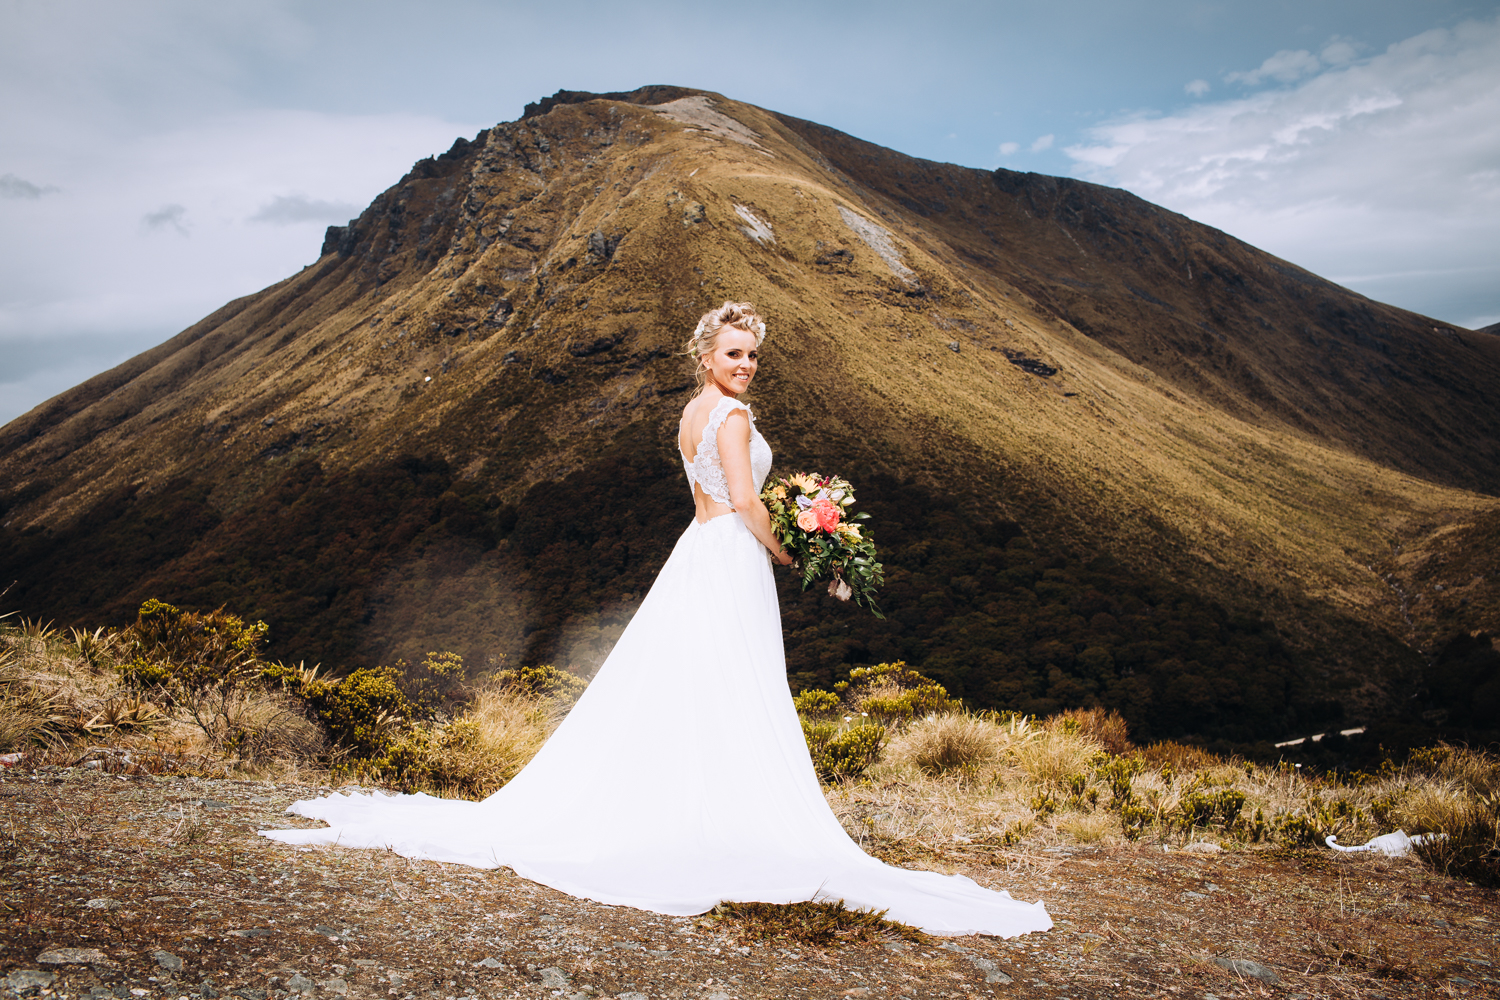 wanaka wedding photographer videographer-405.jpg